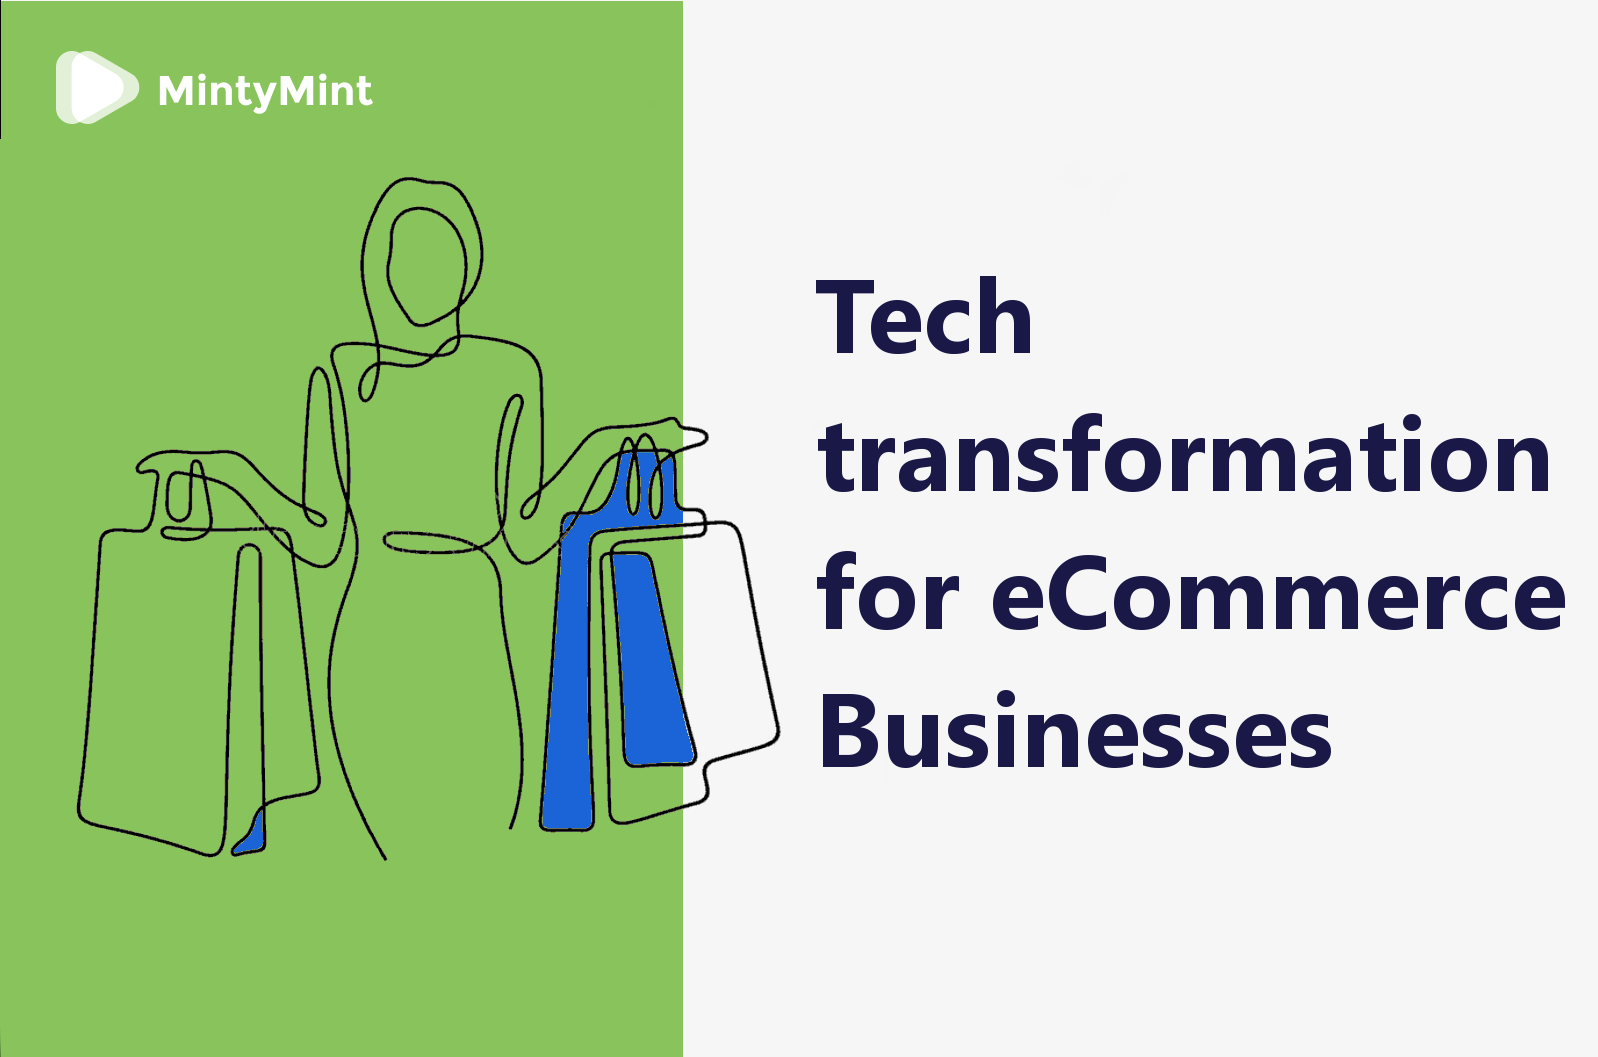 Tech transformation for eCommerce Businesses